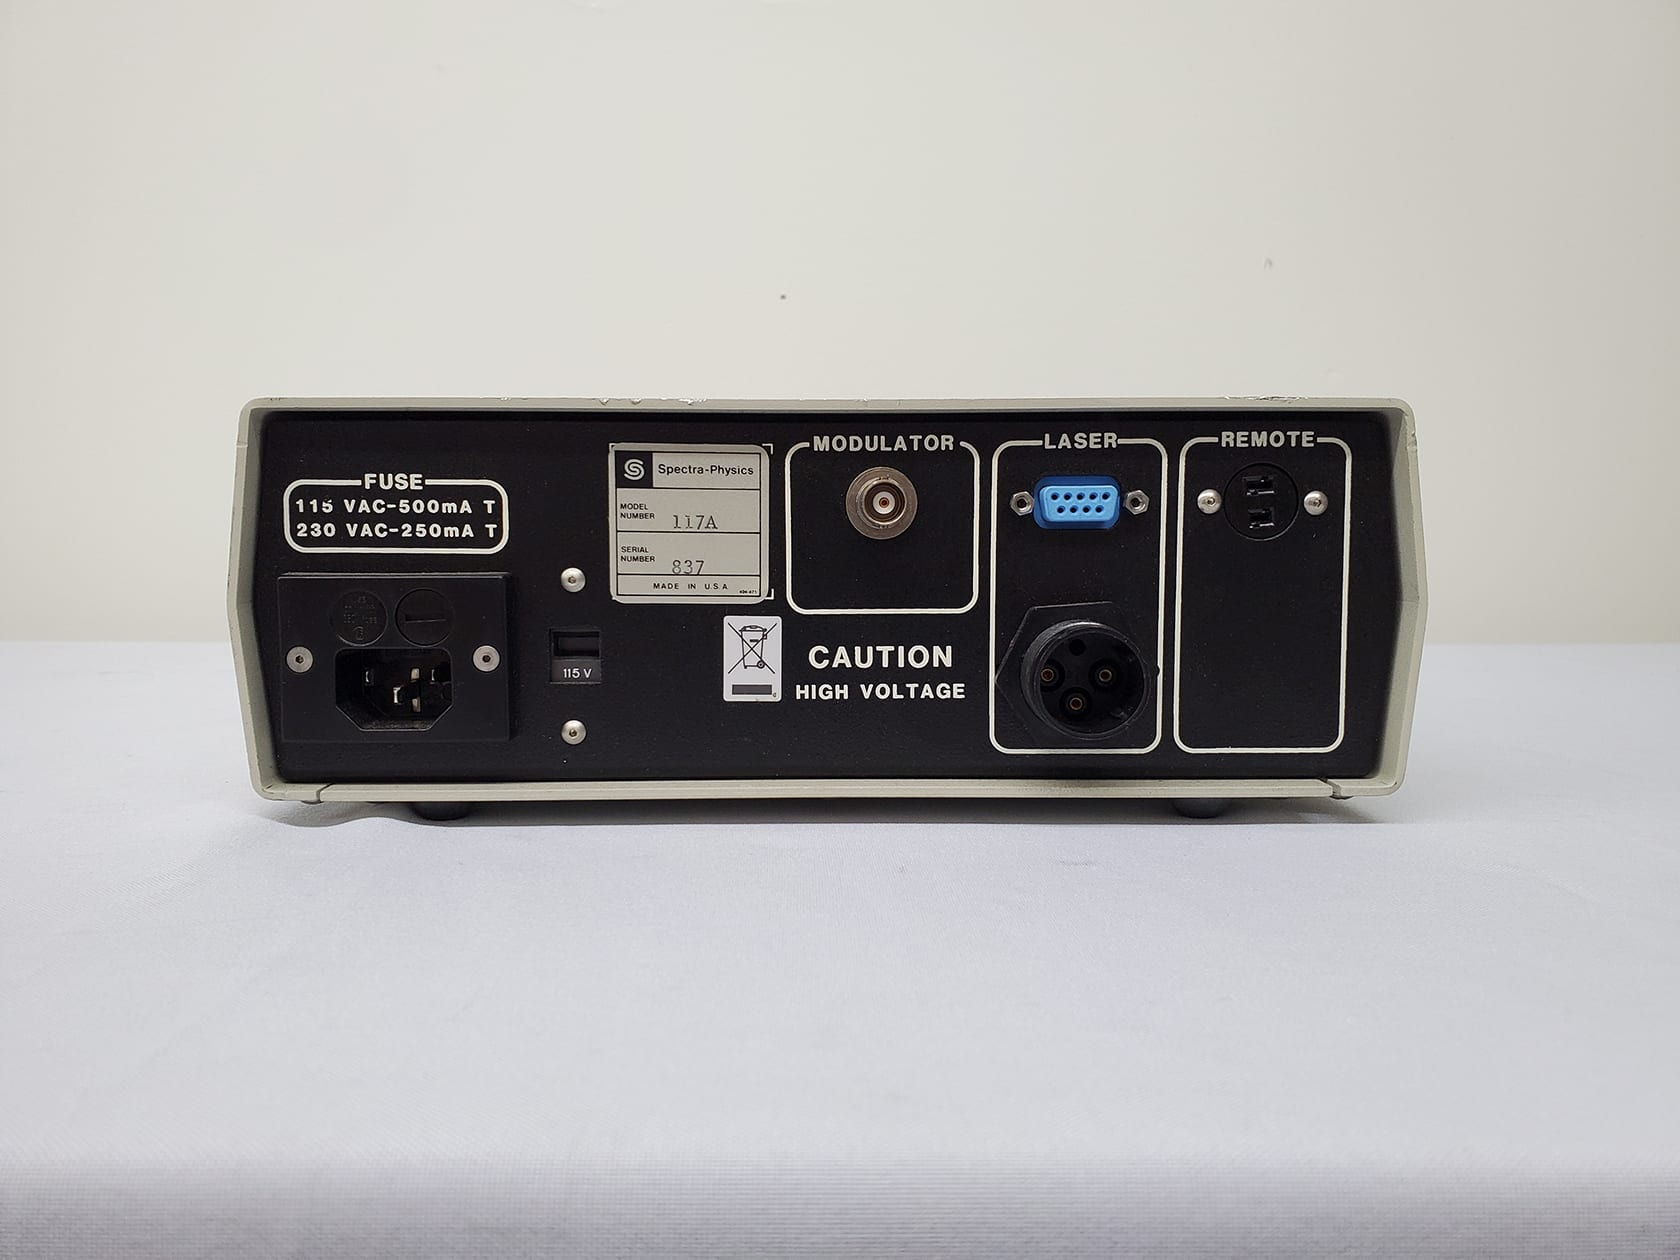 Buy Spectra Physics 117 A Stabilized HeNe Laser Controller -60002 Online